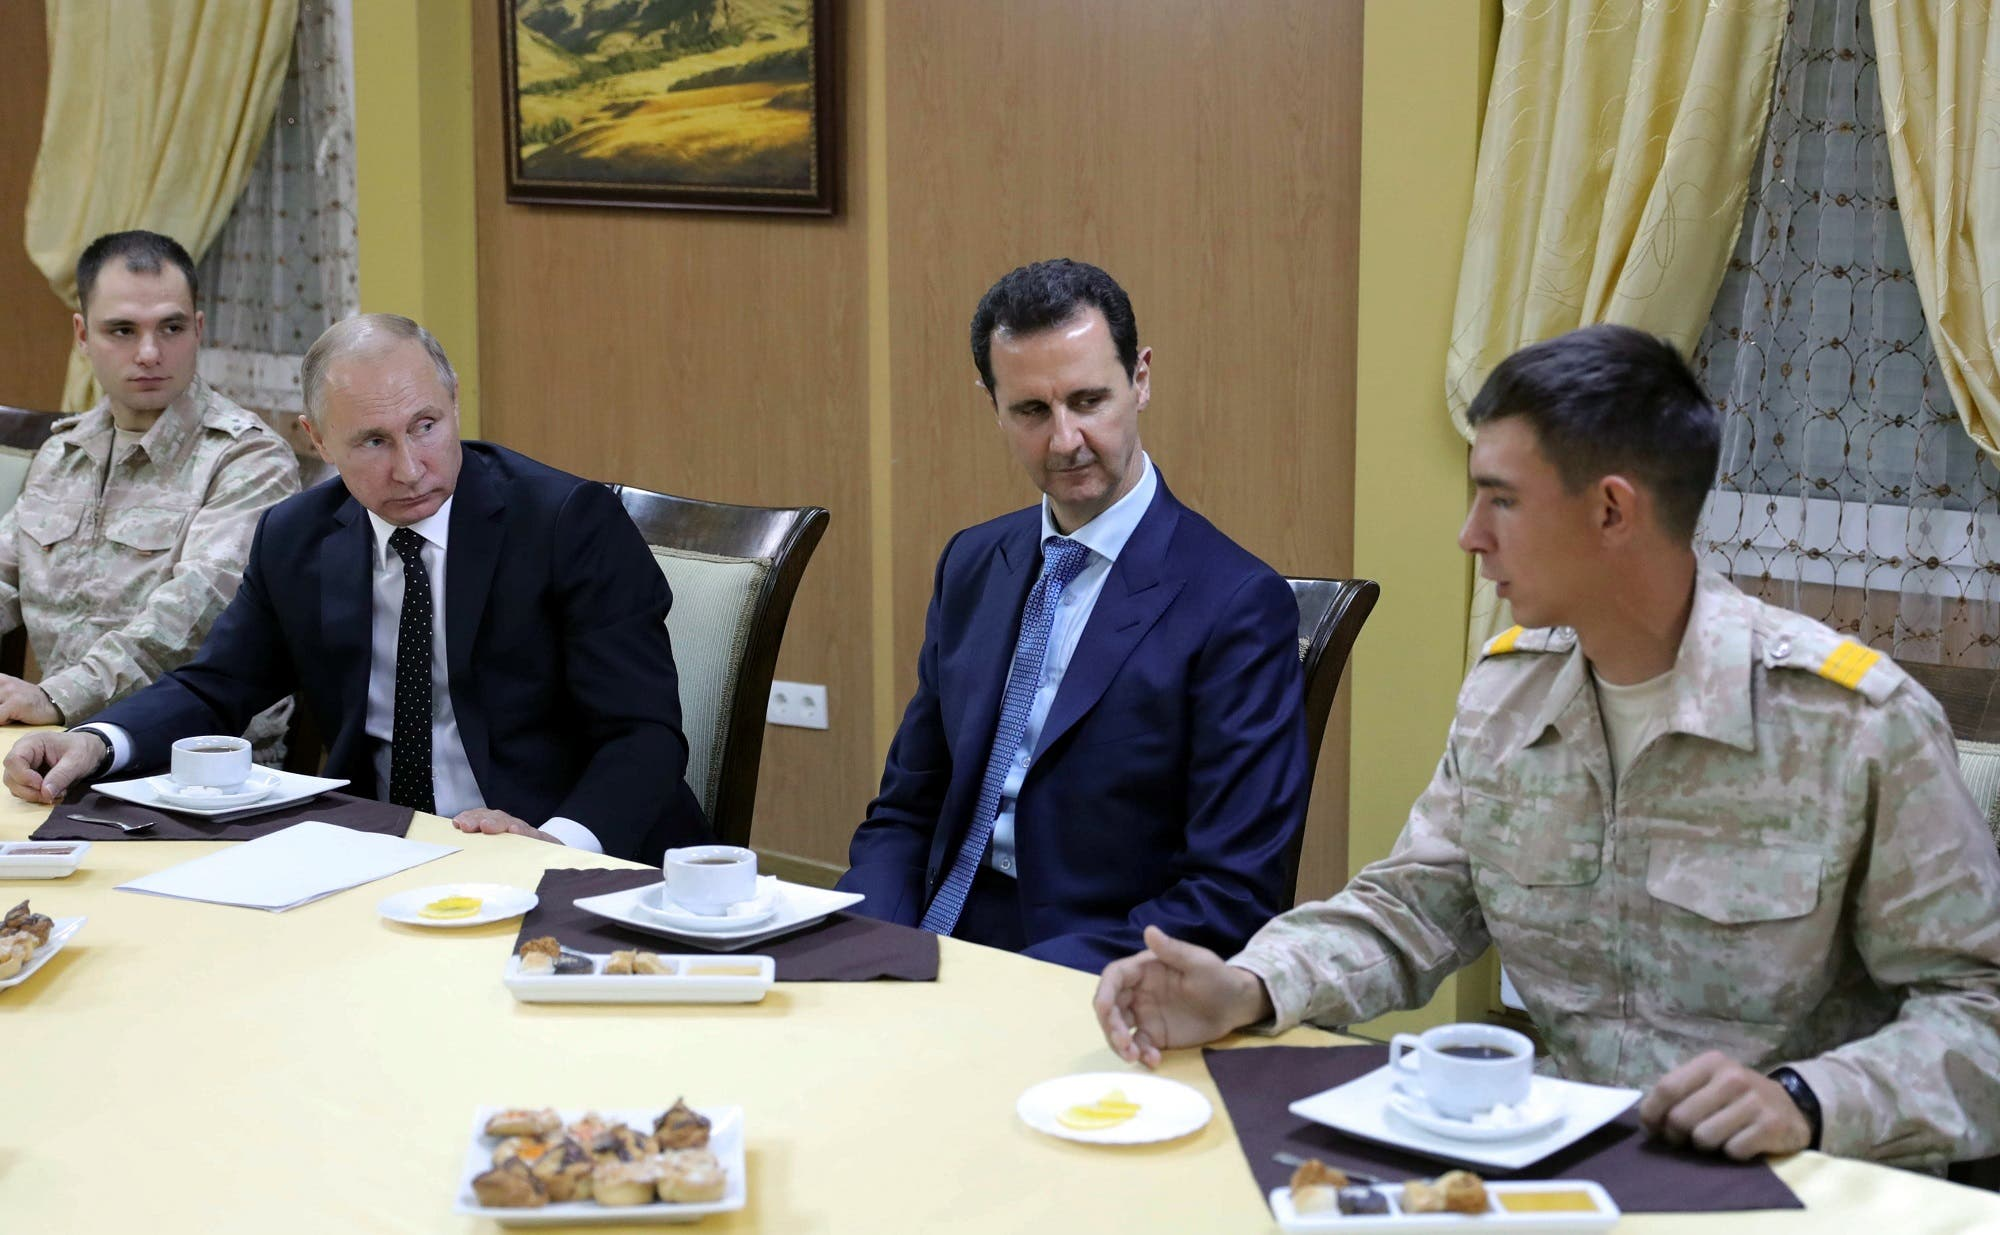 President Putin and Bashar al-Assad with Russian military officers at the Russian air base in Hmeimim, Latakia, on December 11, 2017. (AFP)